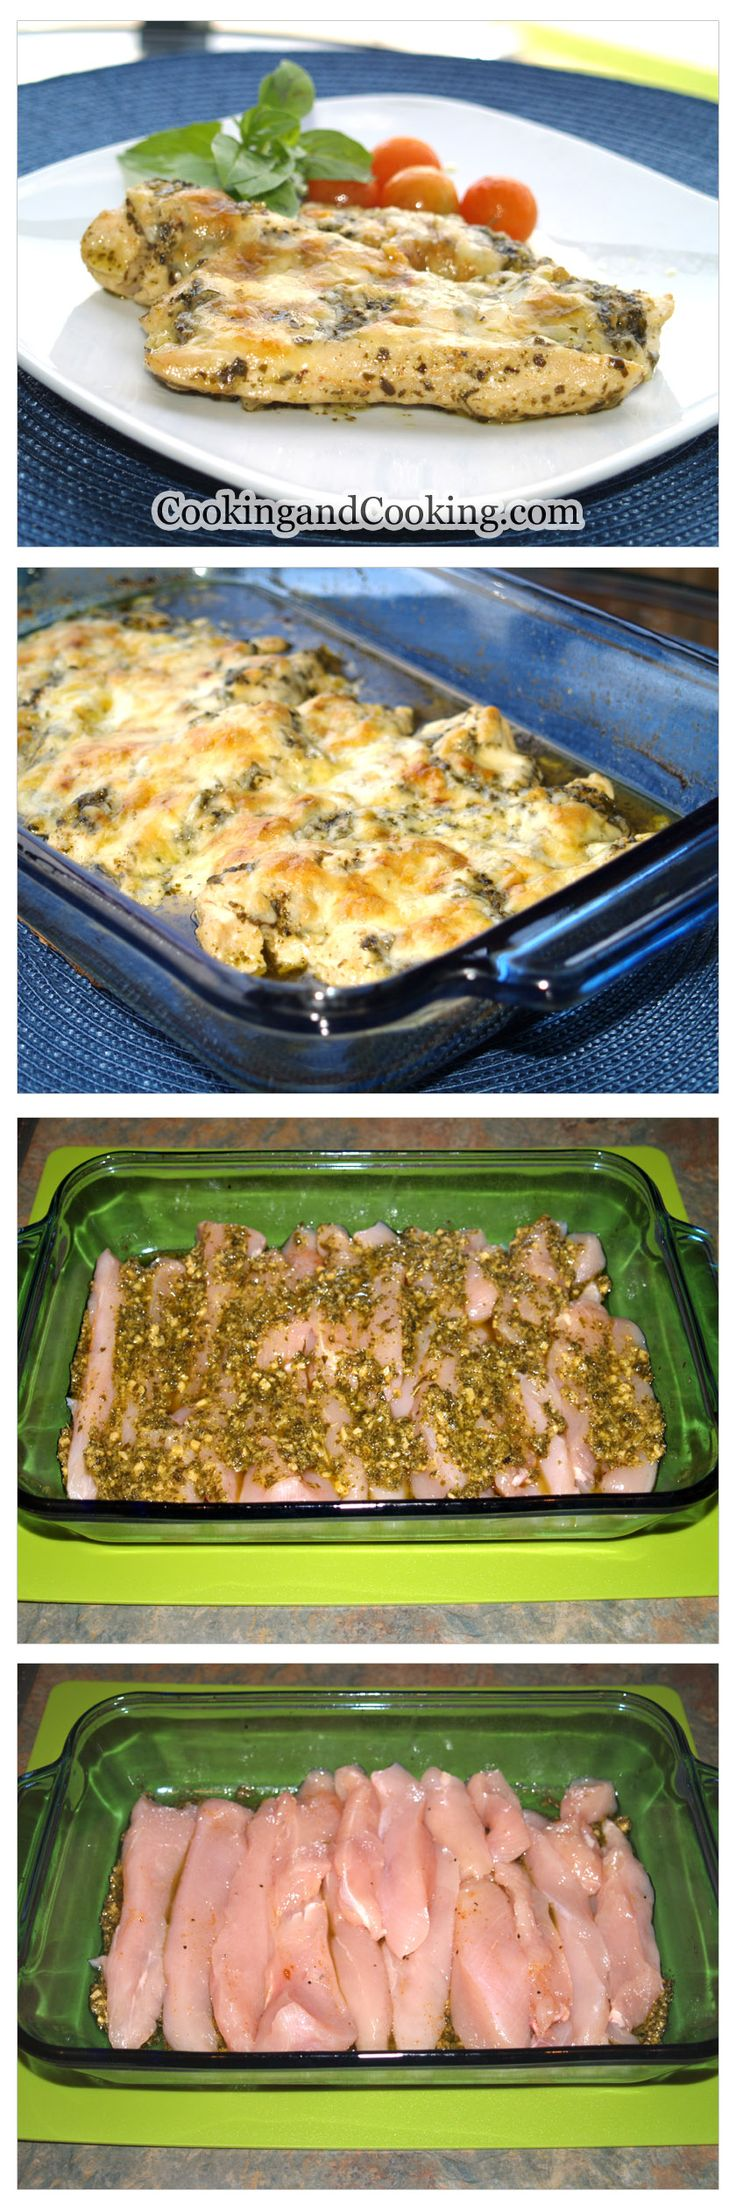 about Baked Pesto Chicken on Pinterest | Chicken pesto recipes, Easy ...